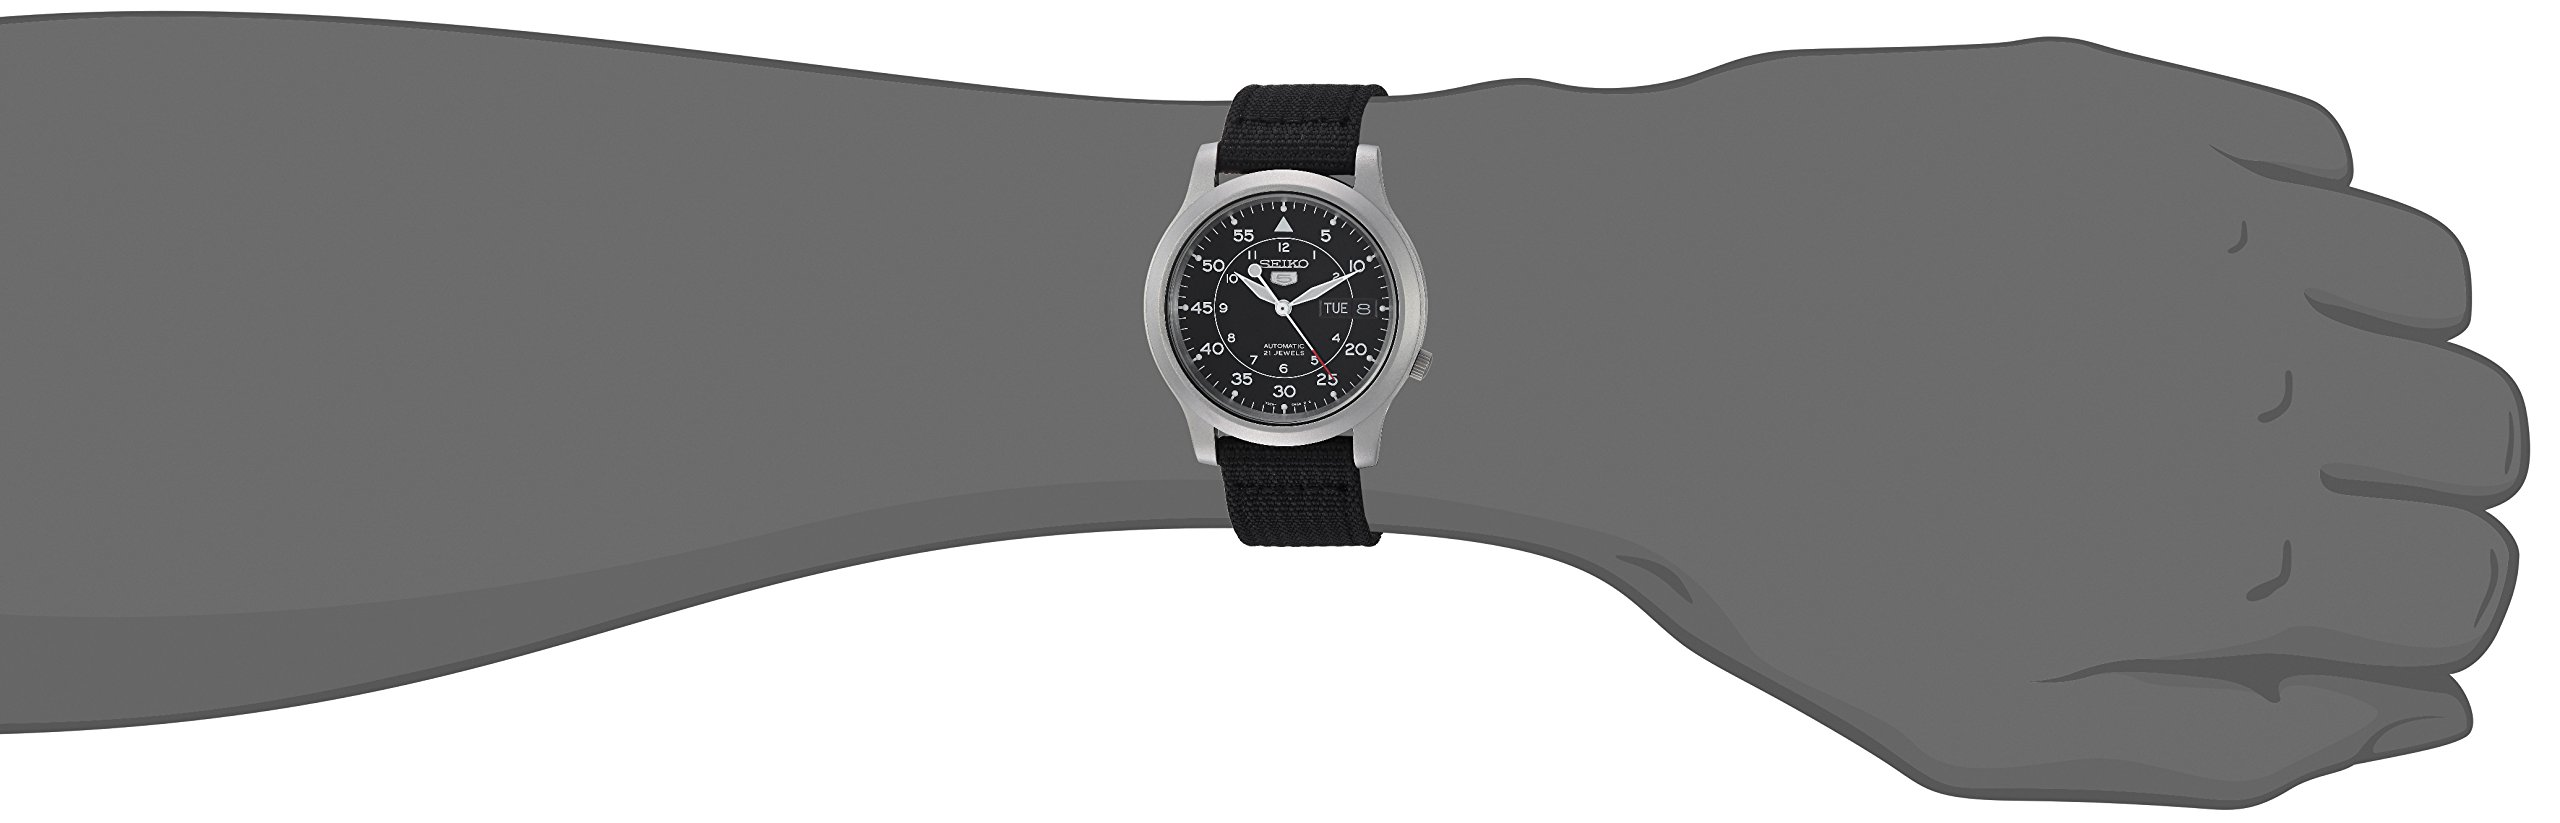 Seiko Men's SNK809 Seiko 5 Automatic Stainless Steel Watch with Black Canvas Strap by Seiko (Image #4)